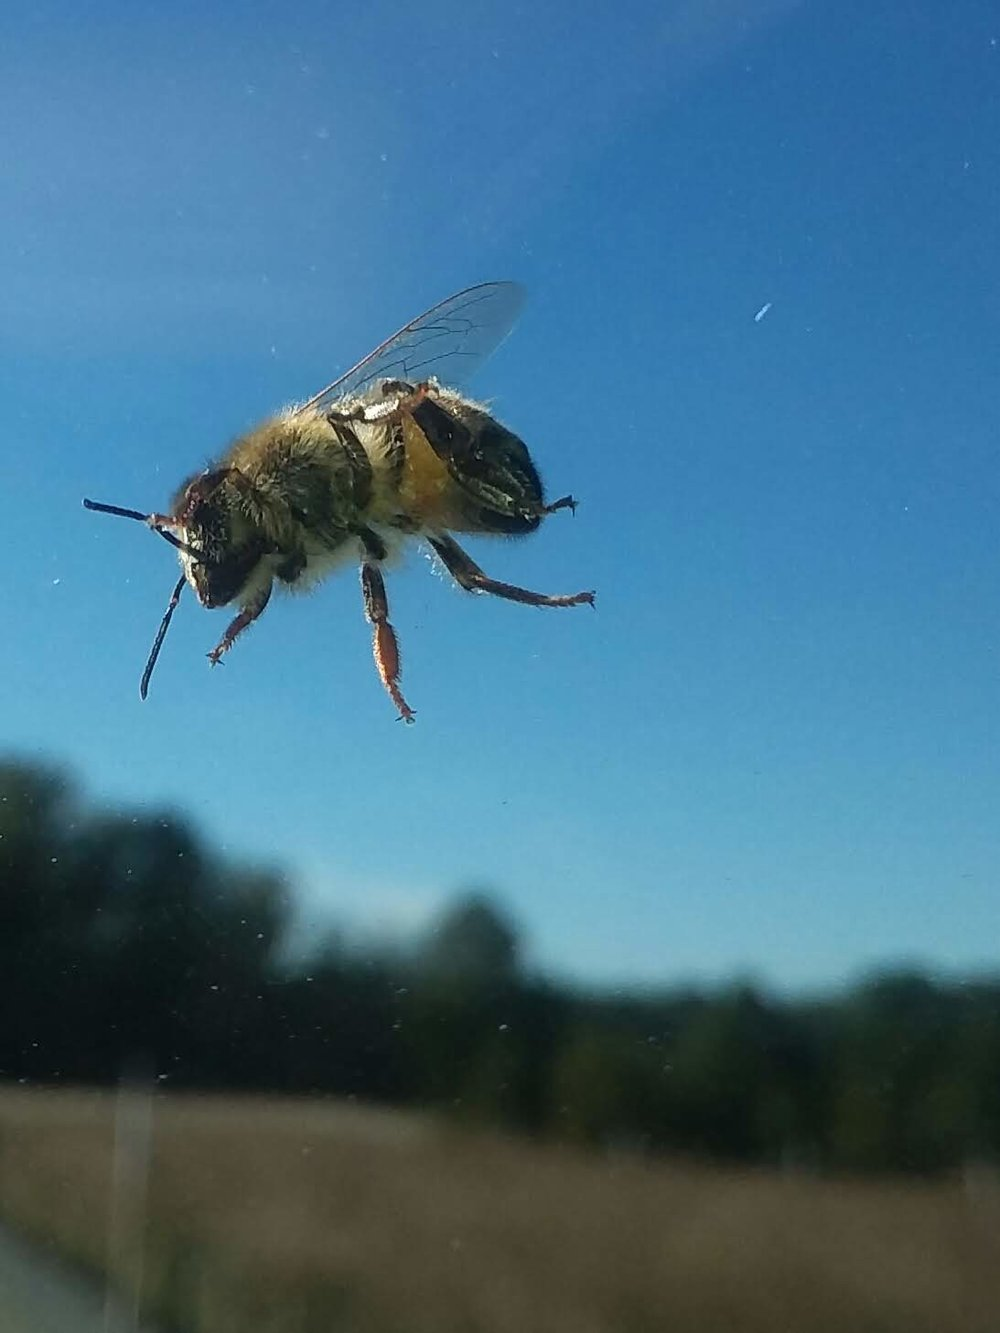 We love seeing bees buzzing around the farm!